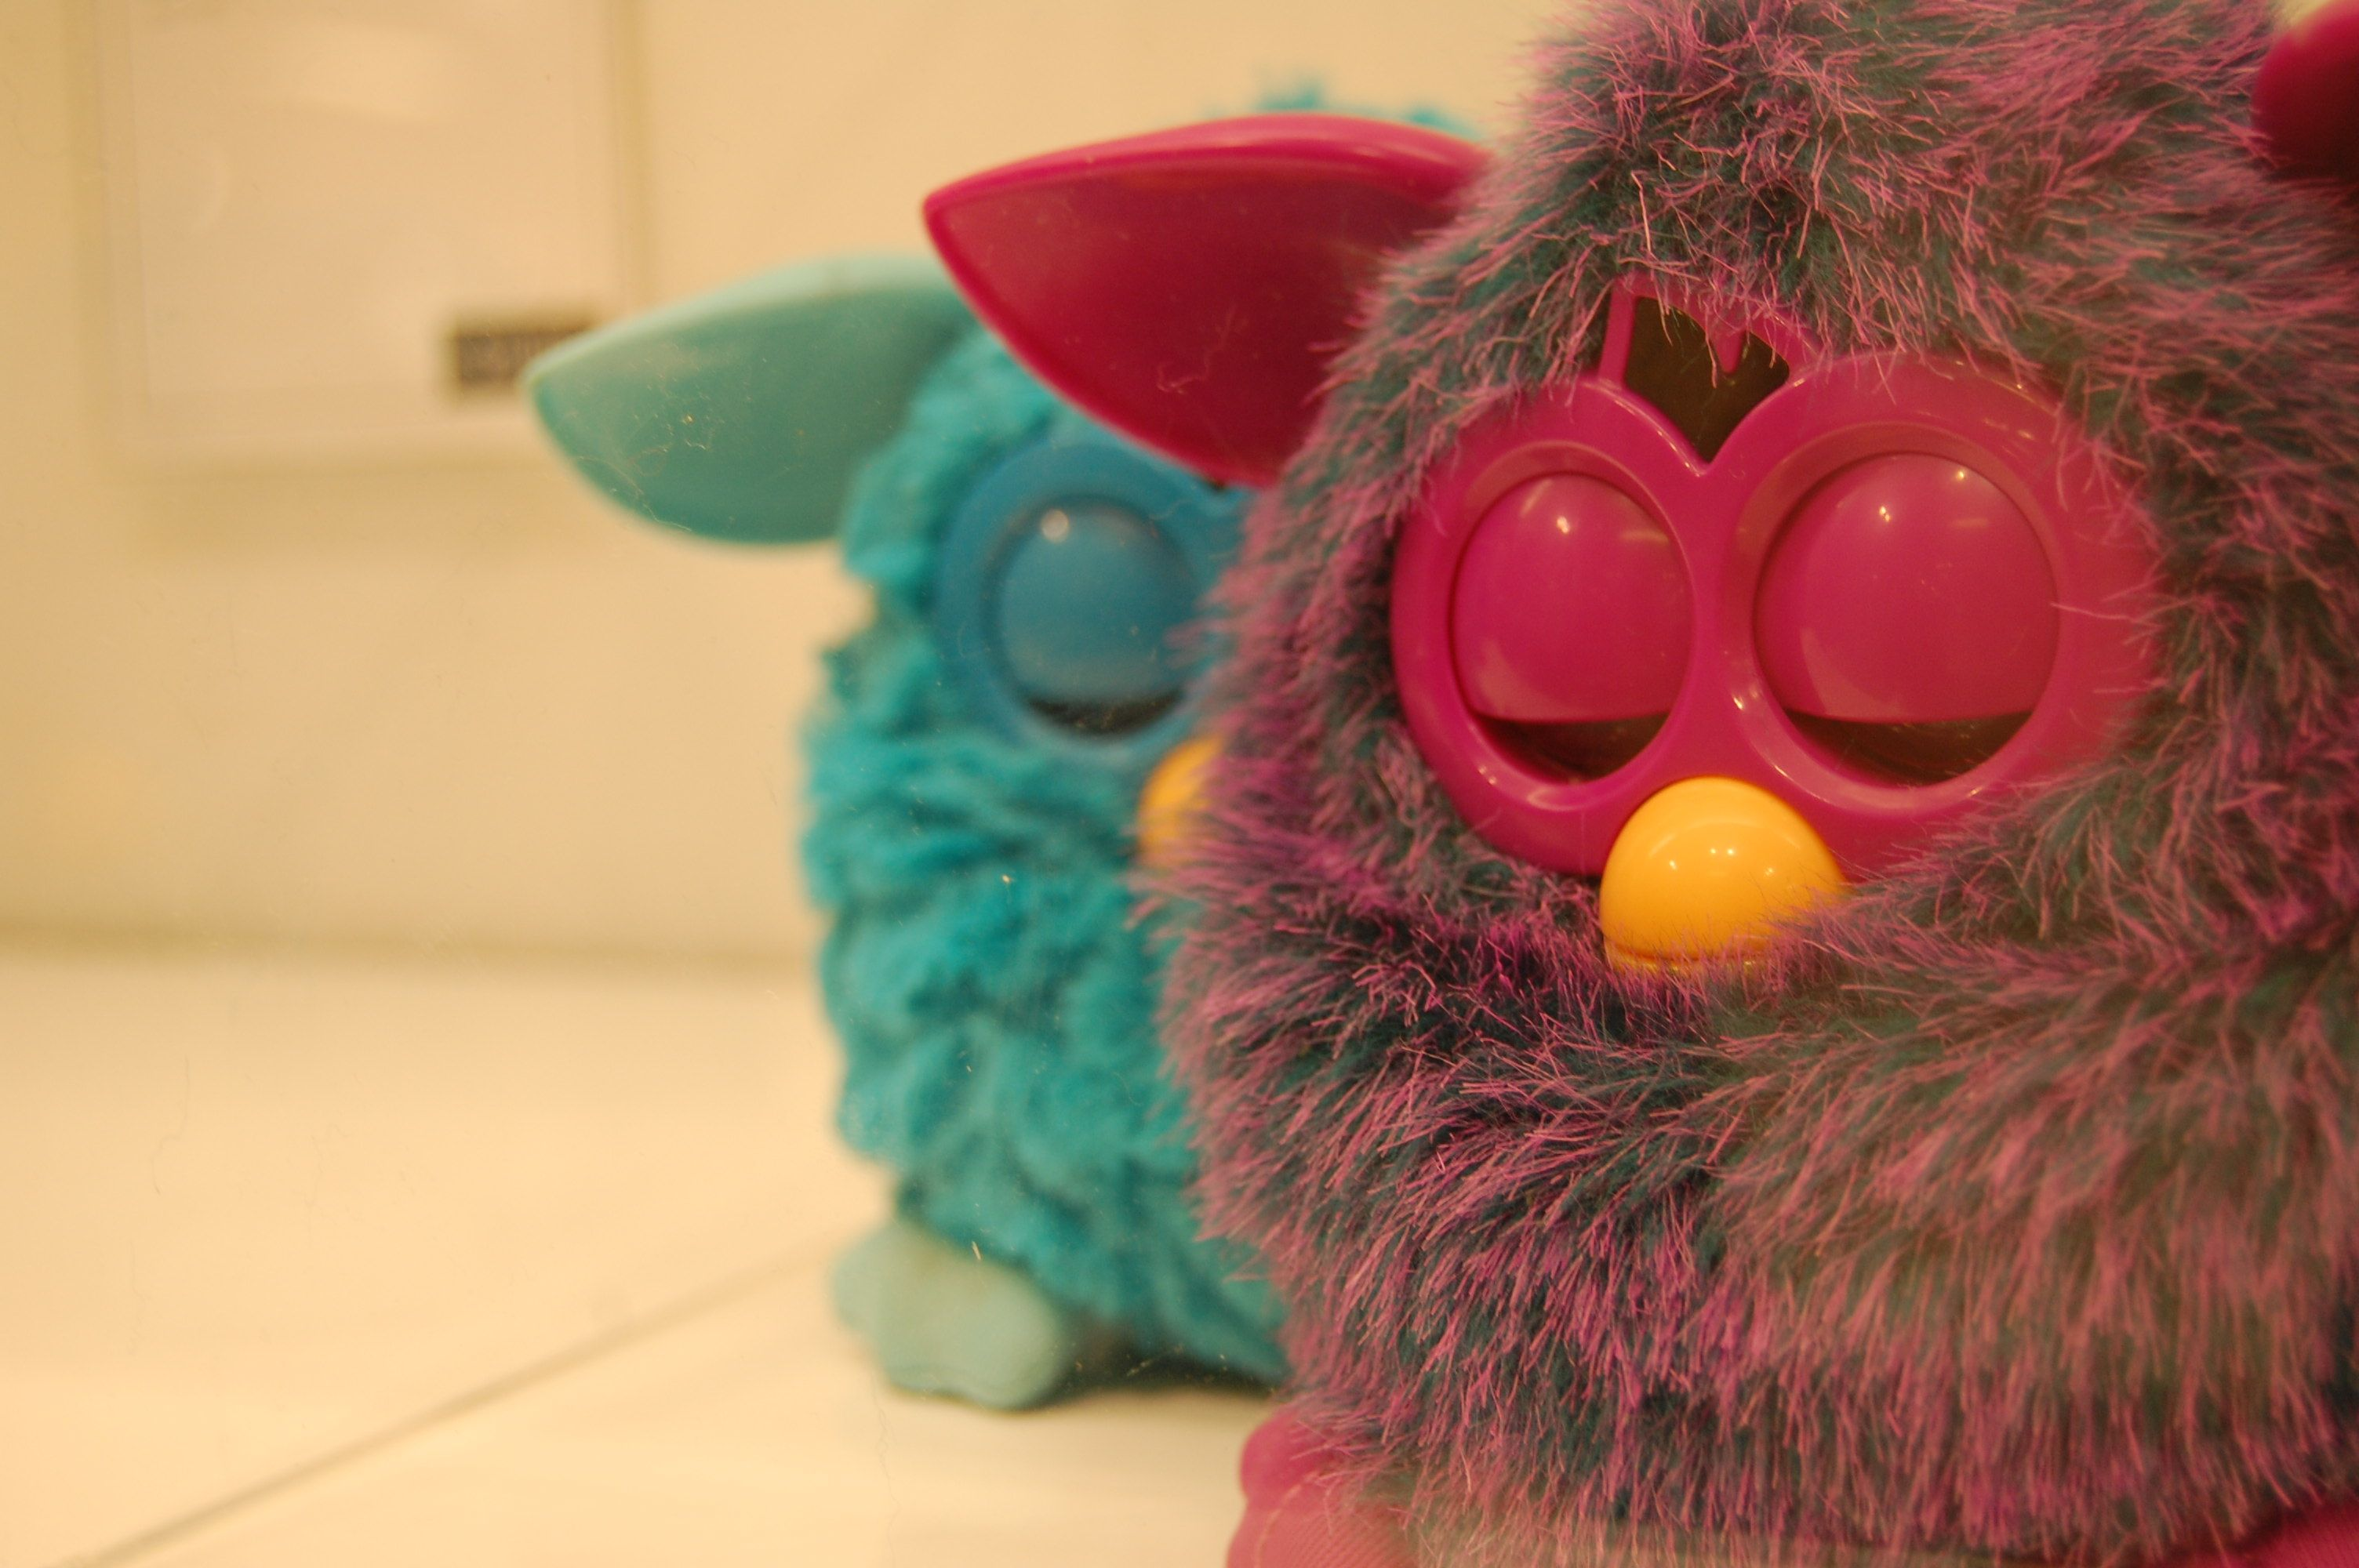 #Furby at rest: The rarest of occurences. Shh… #FurbyAtWIRED